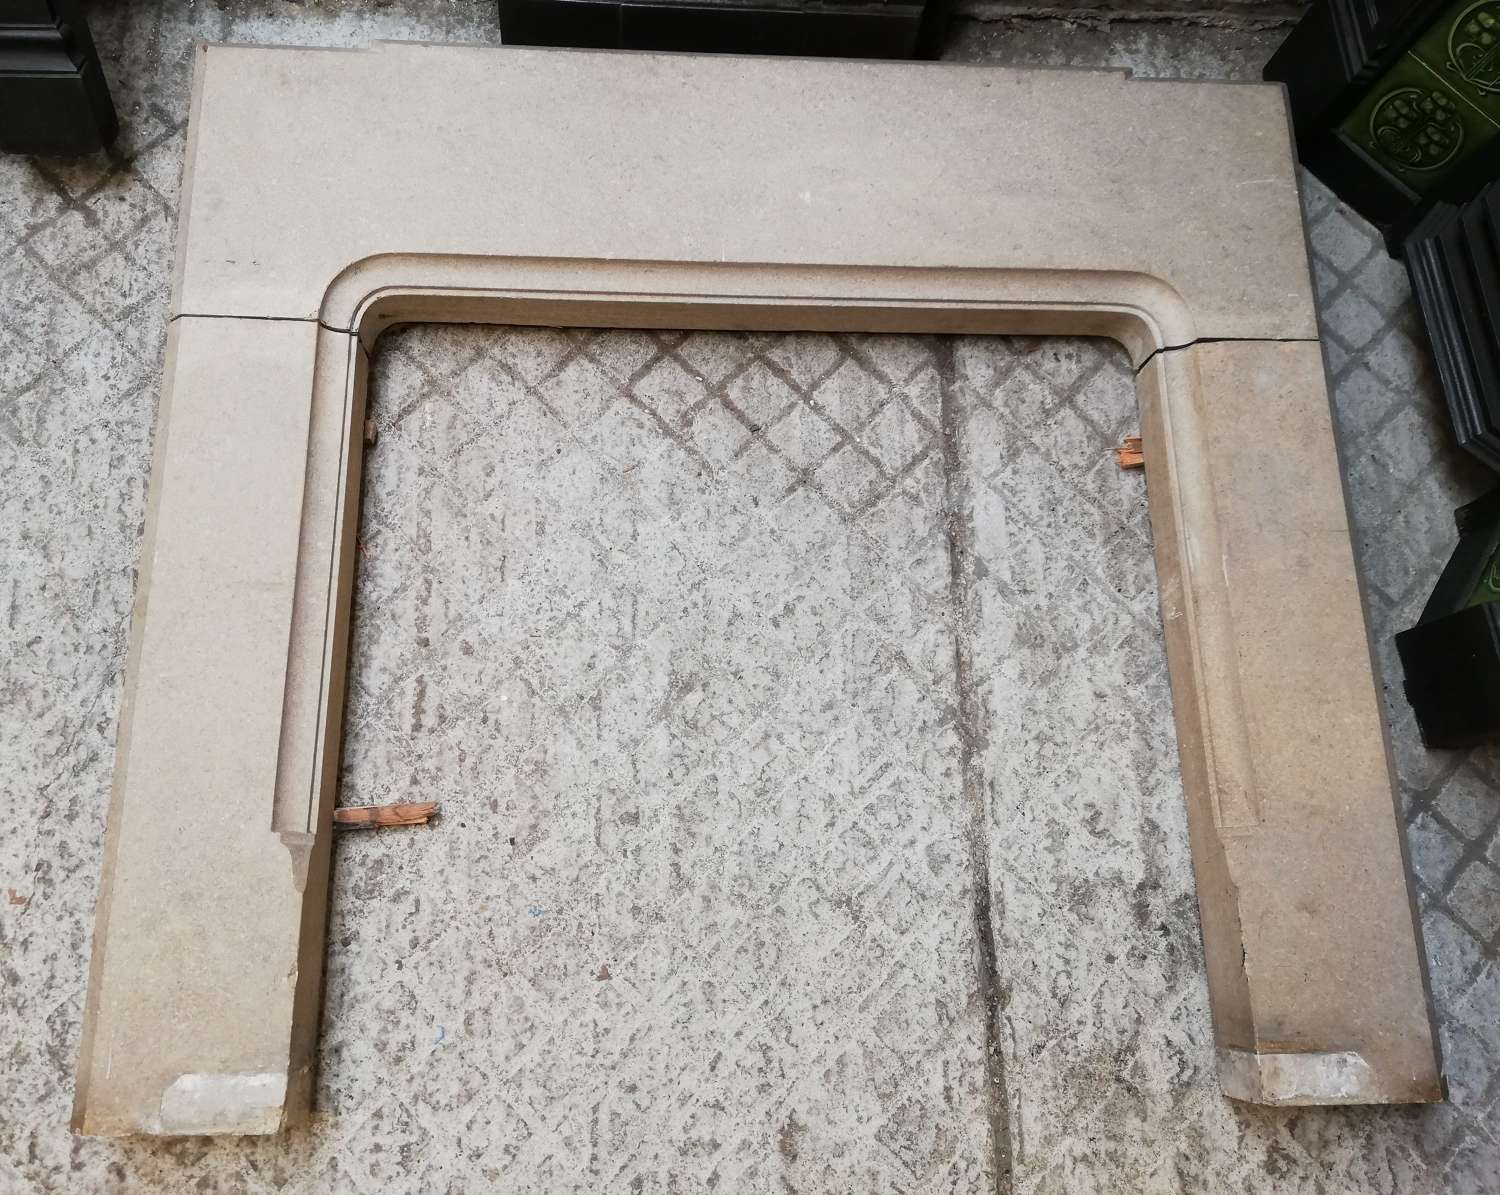 FS0103 AN ELEGANT ANTIQUE ART DECO STONE FIRE SURROUND C.1930